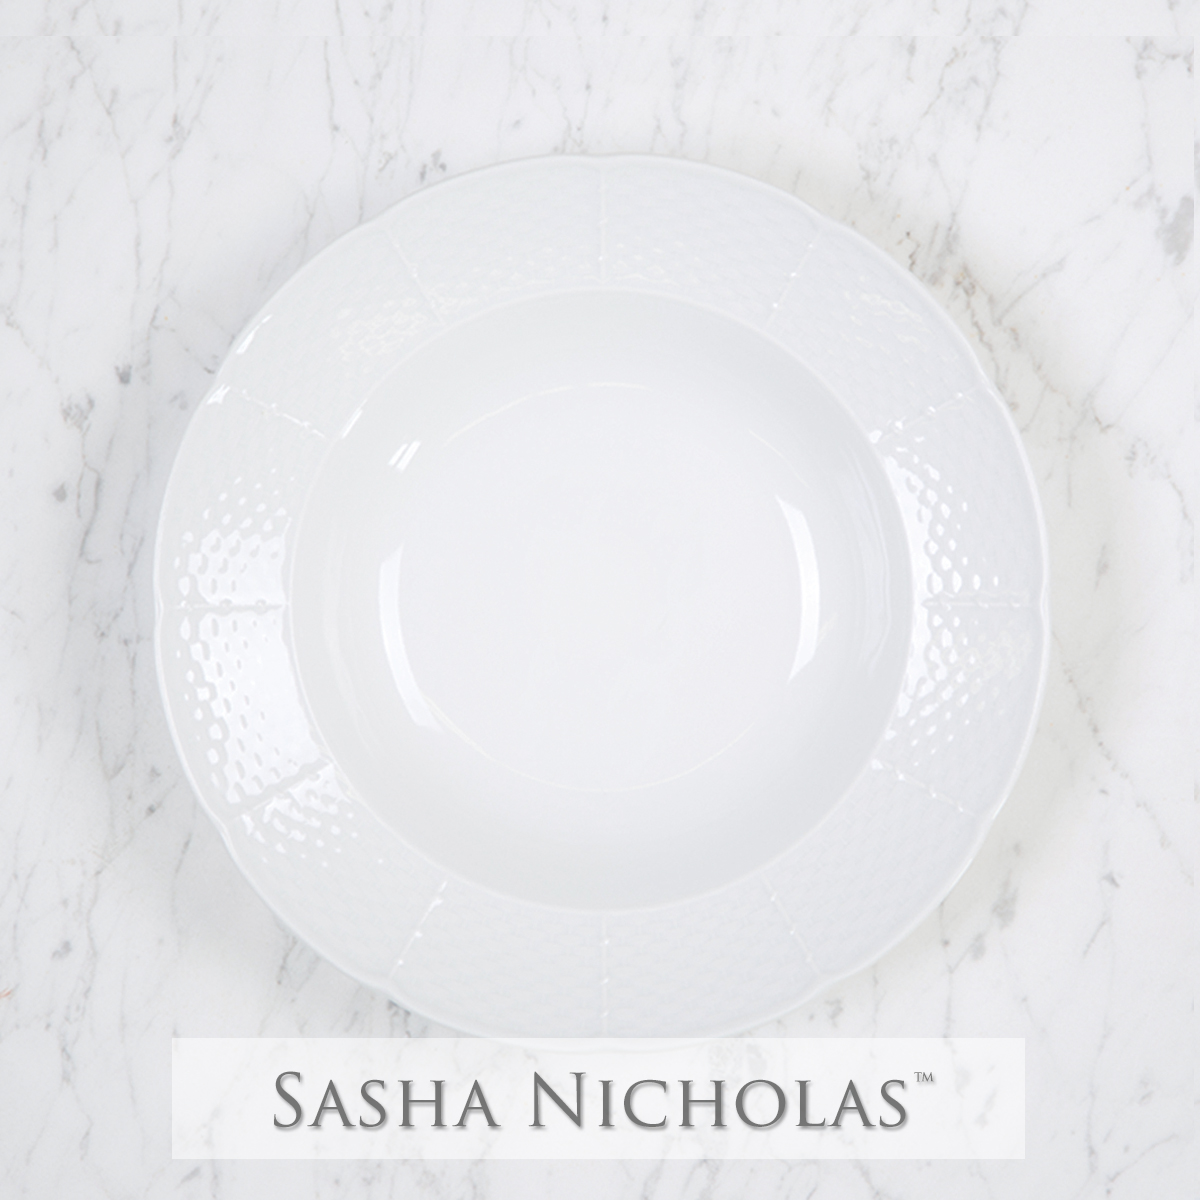 A beautiful addition to your dinnerware collection and to adorn your tablescapes with. It makes the perfect gift for your wedding registry. Choose from their signature font styles or use a custom monogram or crest of your choice! | Sasha Nicholas‰Ûªs white porcelain rim soup bowl